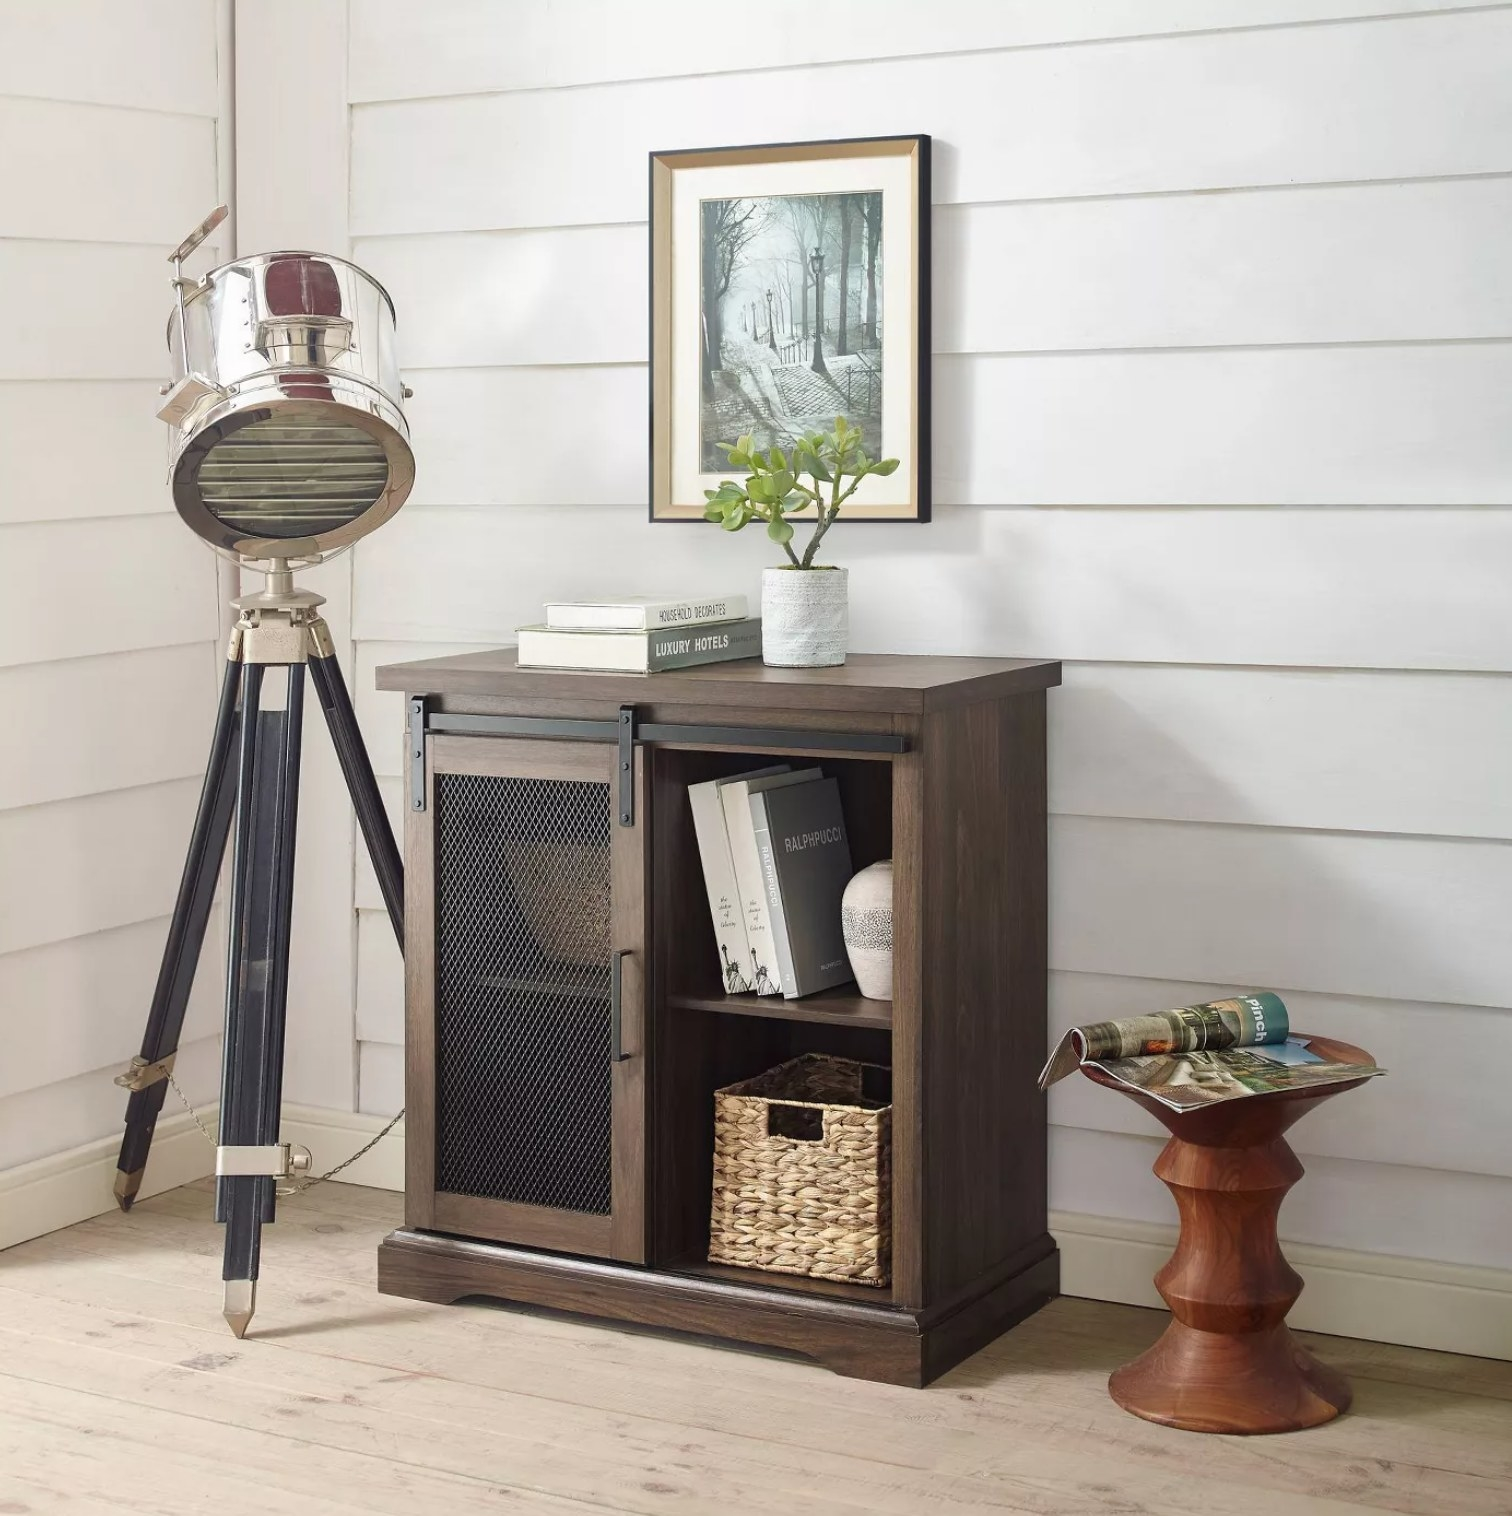 The buffet with books and storage bins